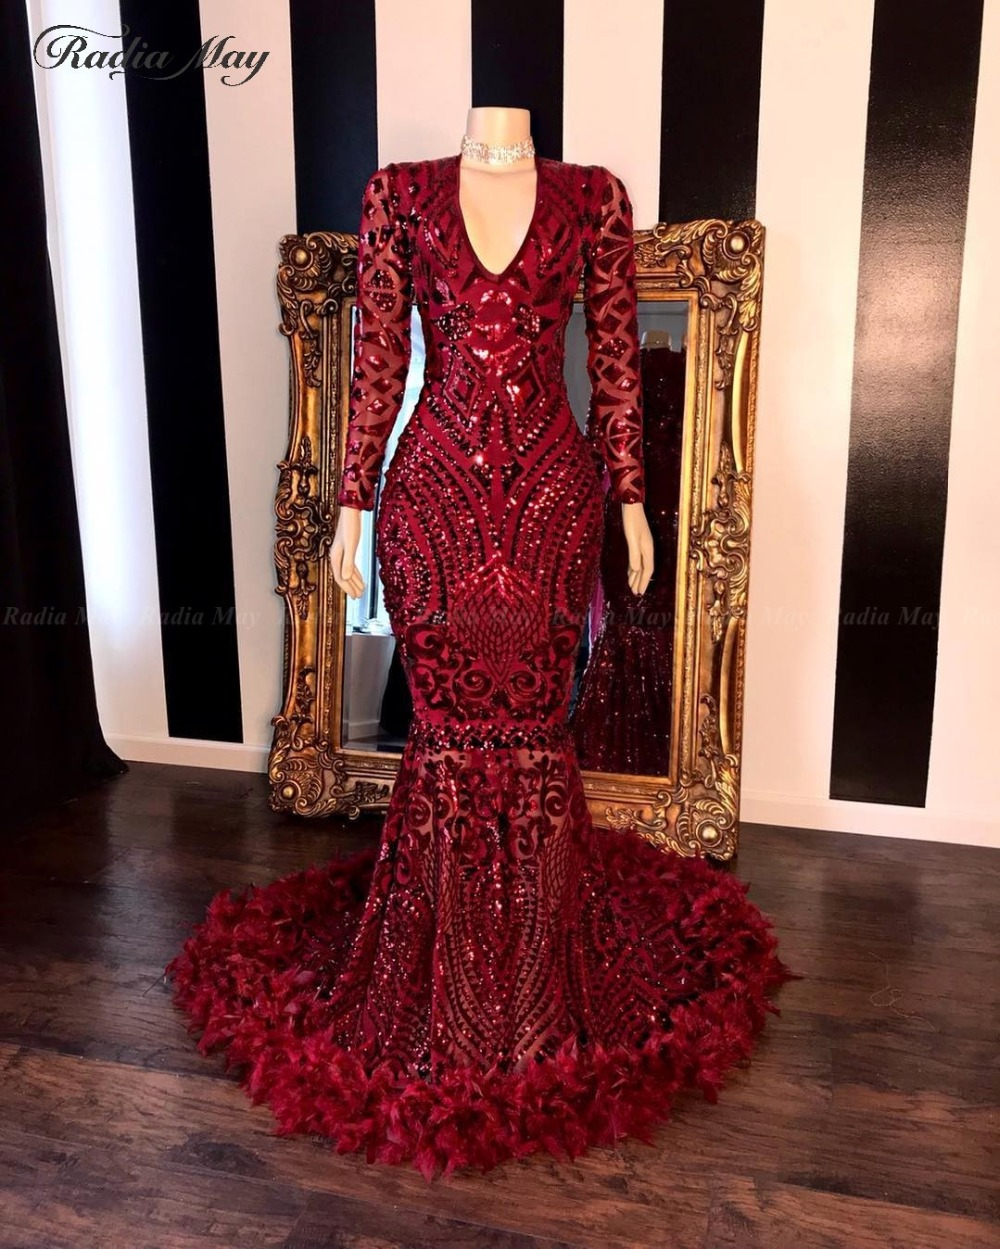 Burgundy Sequin Long Sleeves Mermaid African Prom Dresses Feathers Train V-Neck Plus Size Silver Evening Gowns Graduation Dress(China)